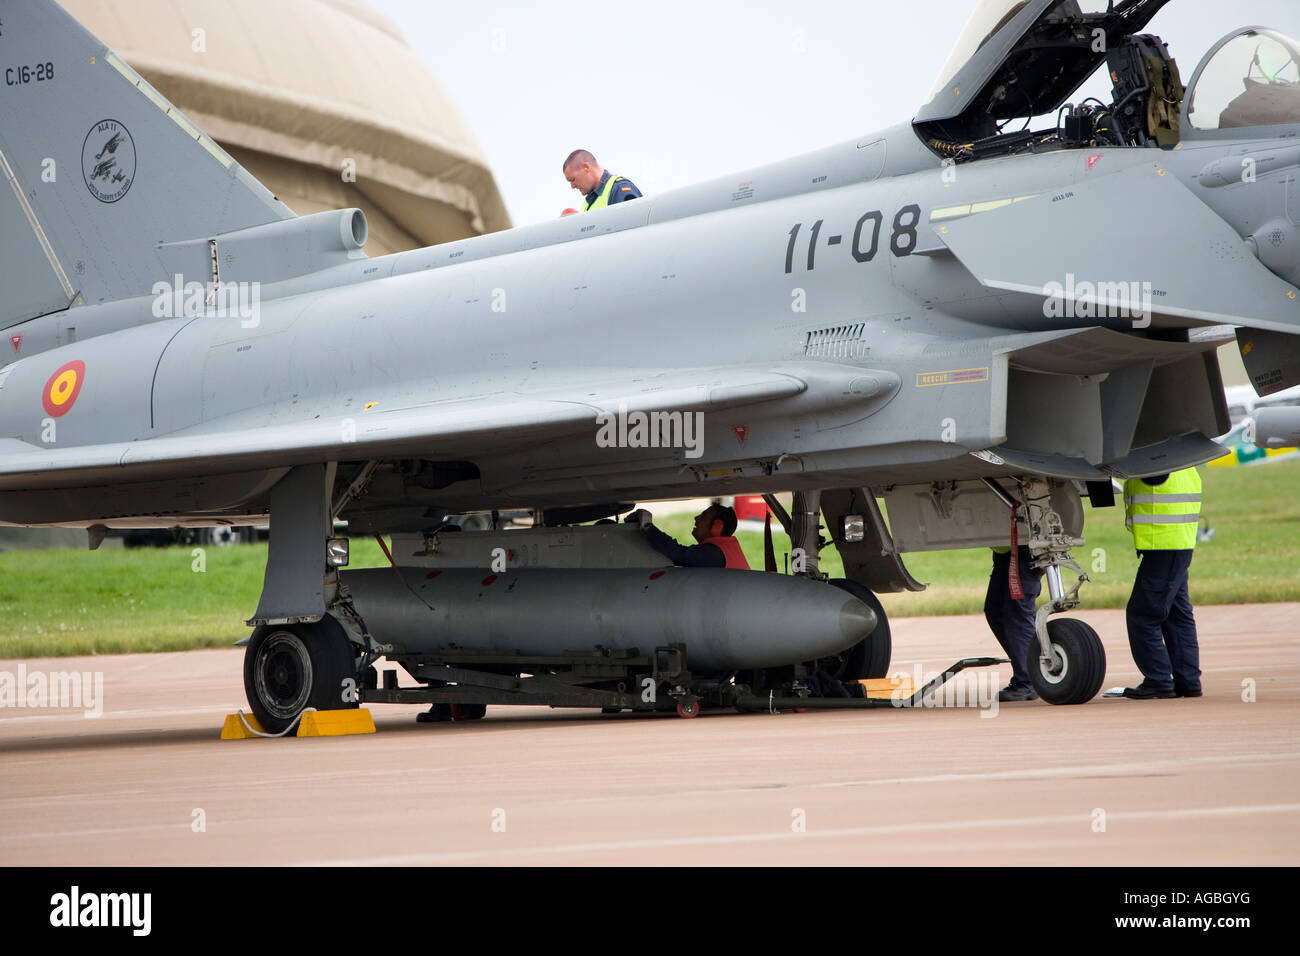 Royal Air Force Eurofighter Typhoon T1 being maintained - Stock Image